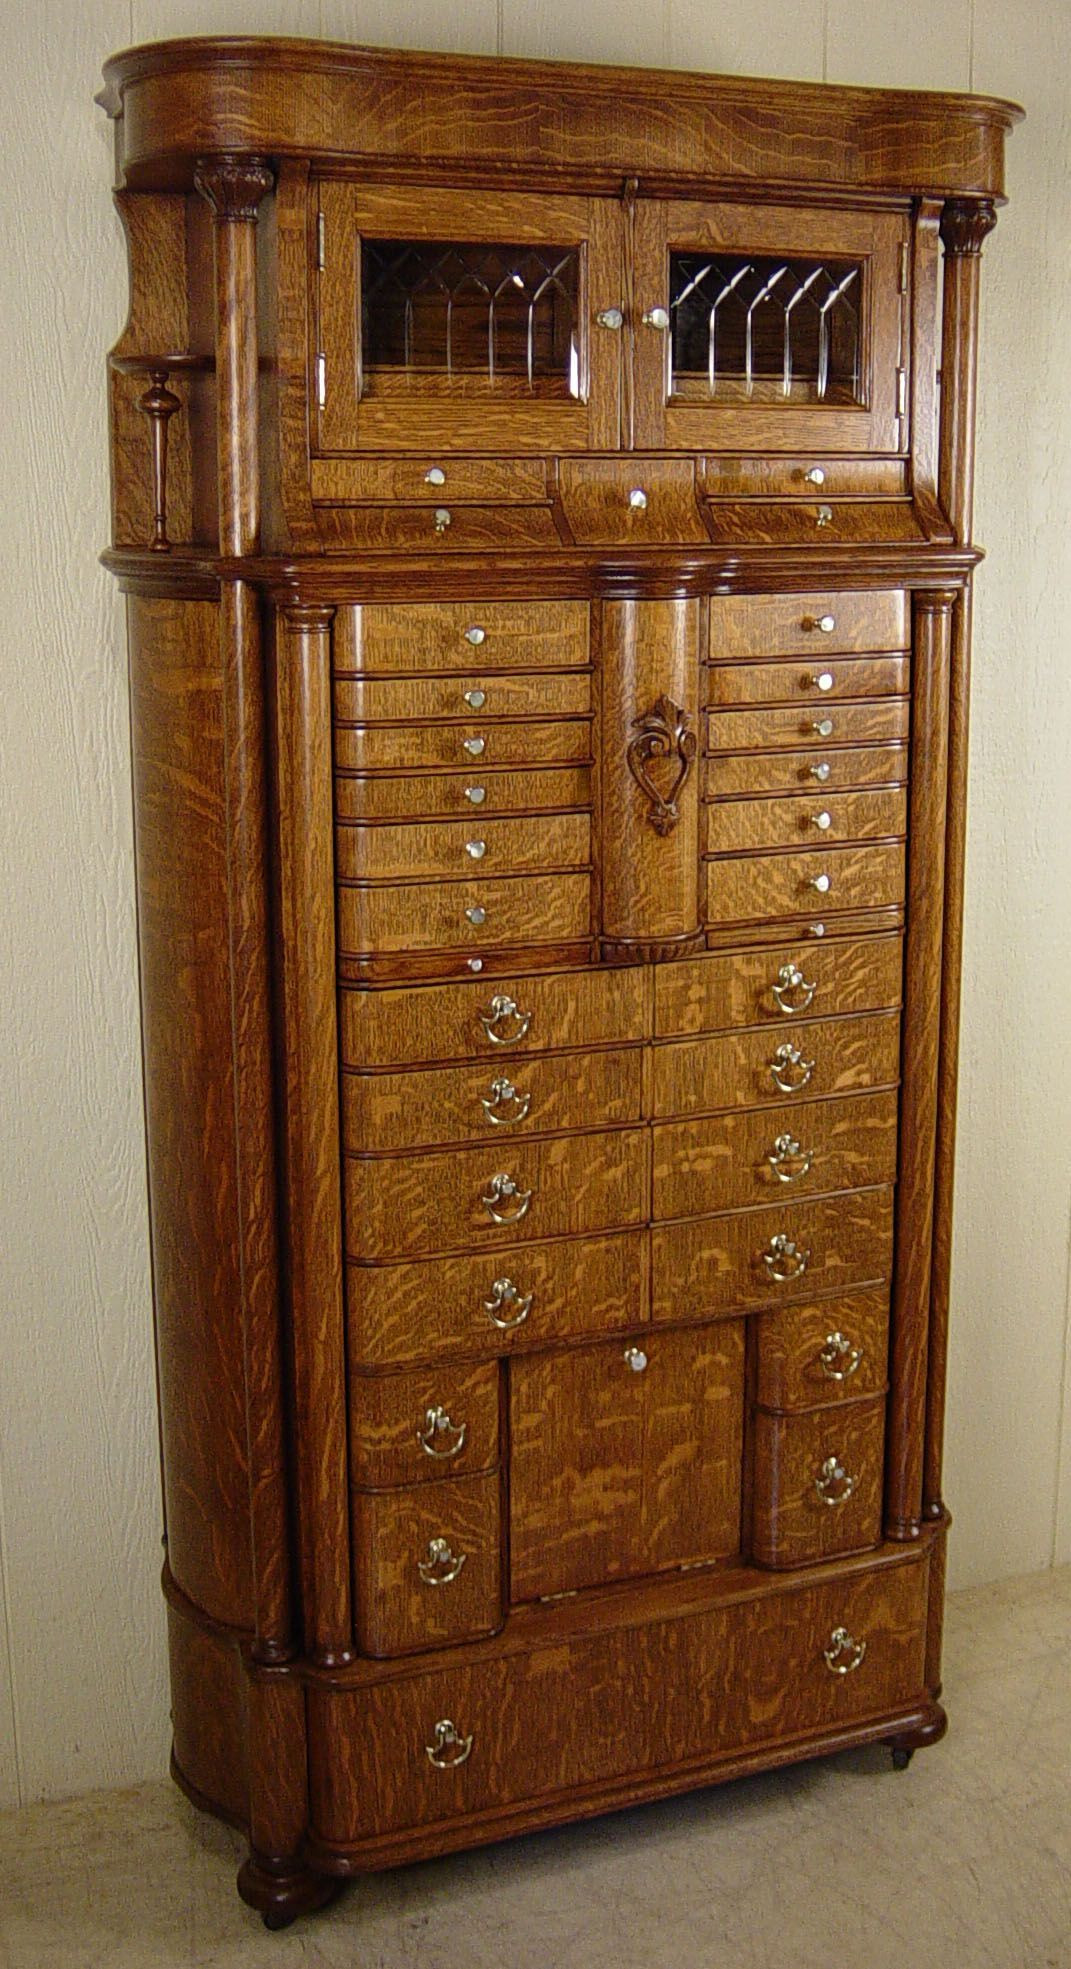 Antique Furniture Near Me Fresh Old Fashioned Furniture Antique Timber Table